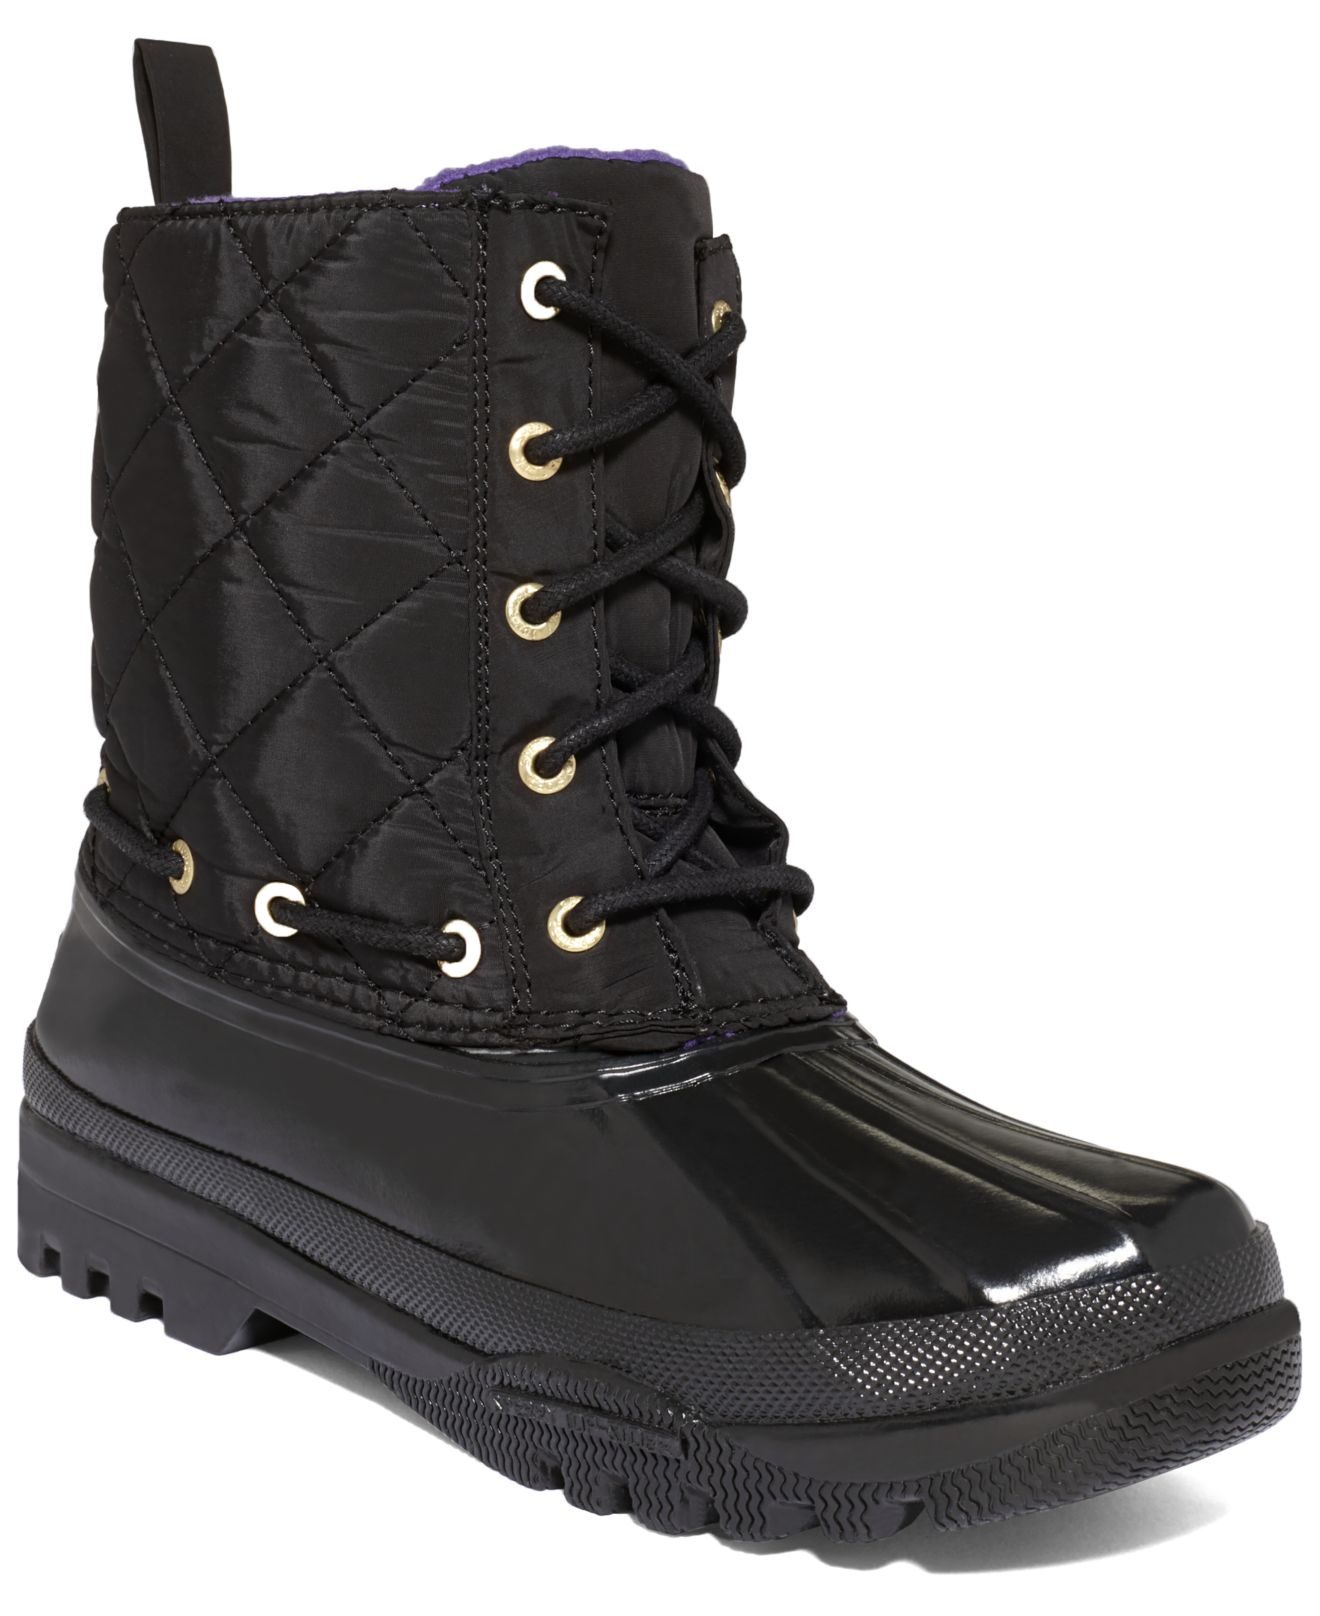 Sperry top-sider Women's Gosling Quilted Rain Boots in Black | Lyst